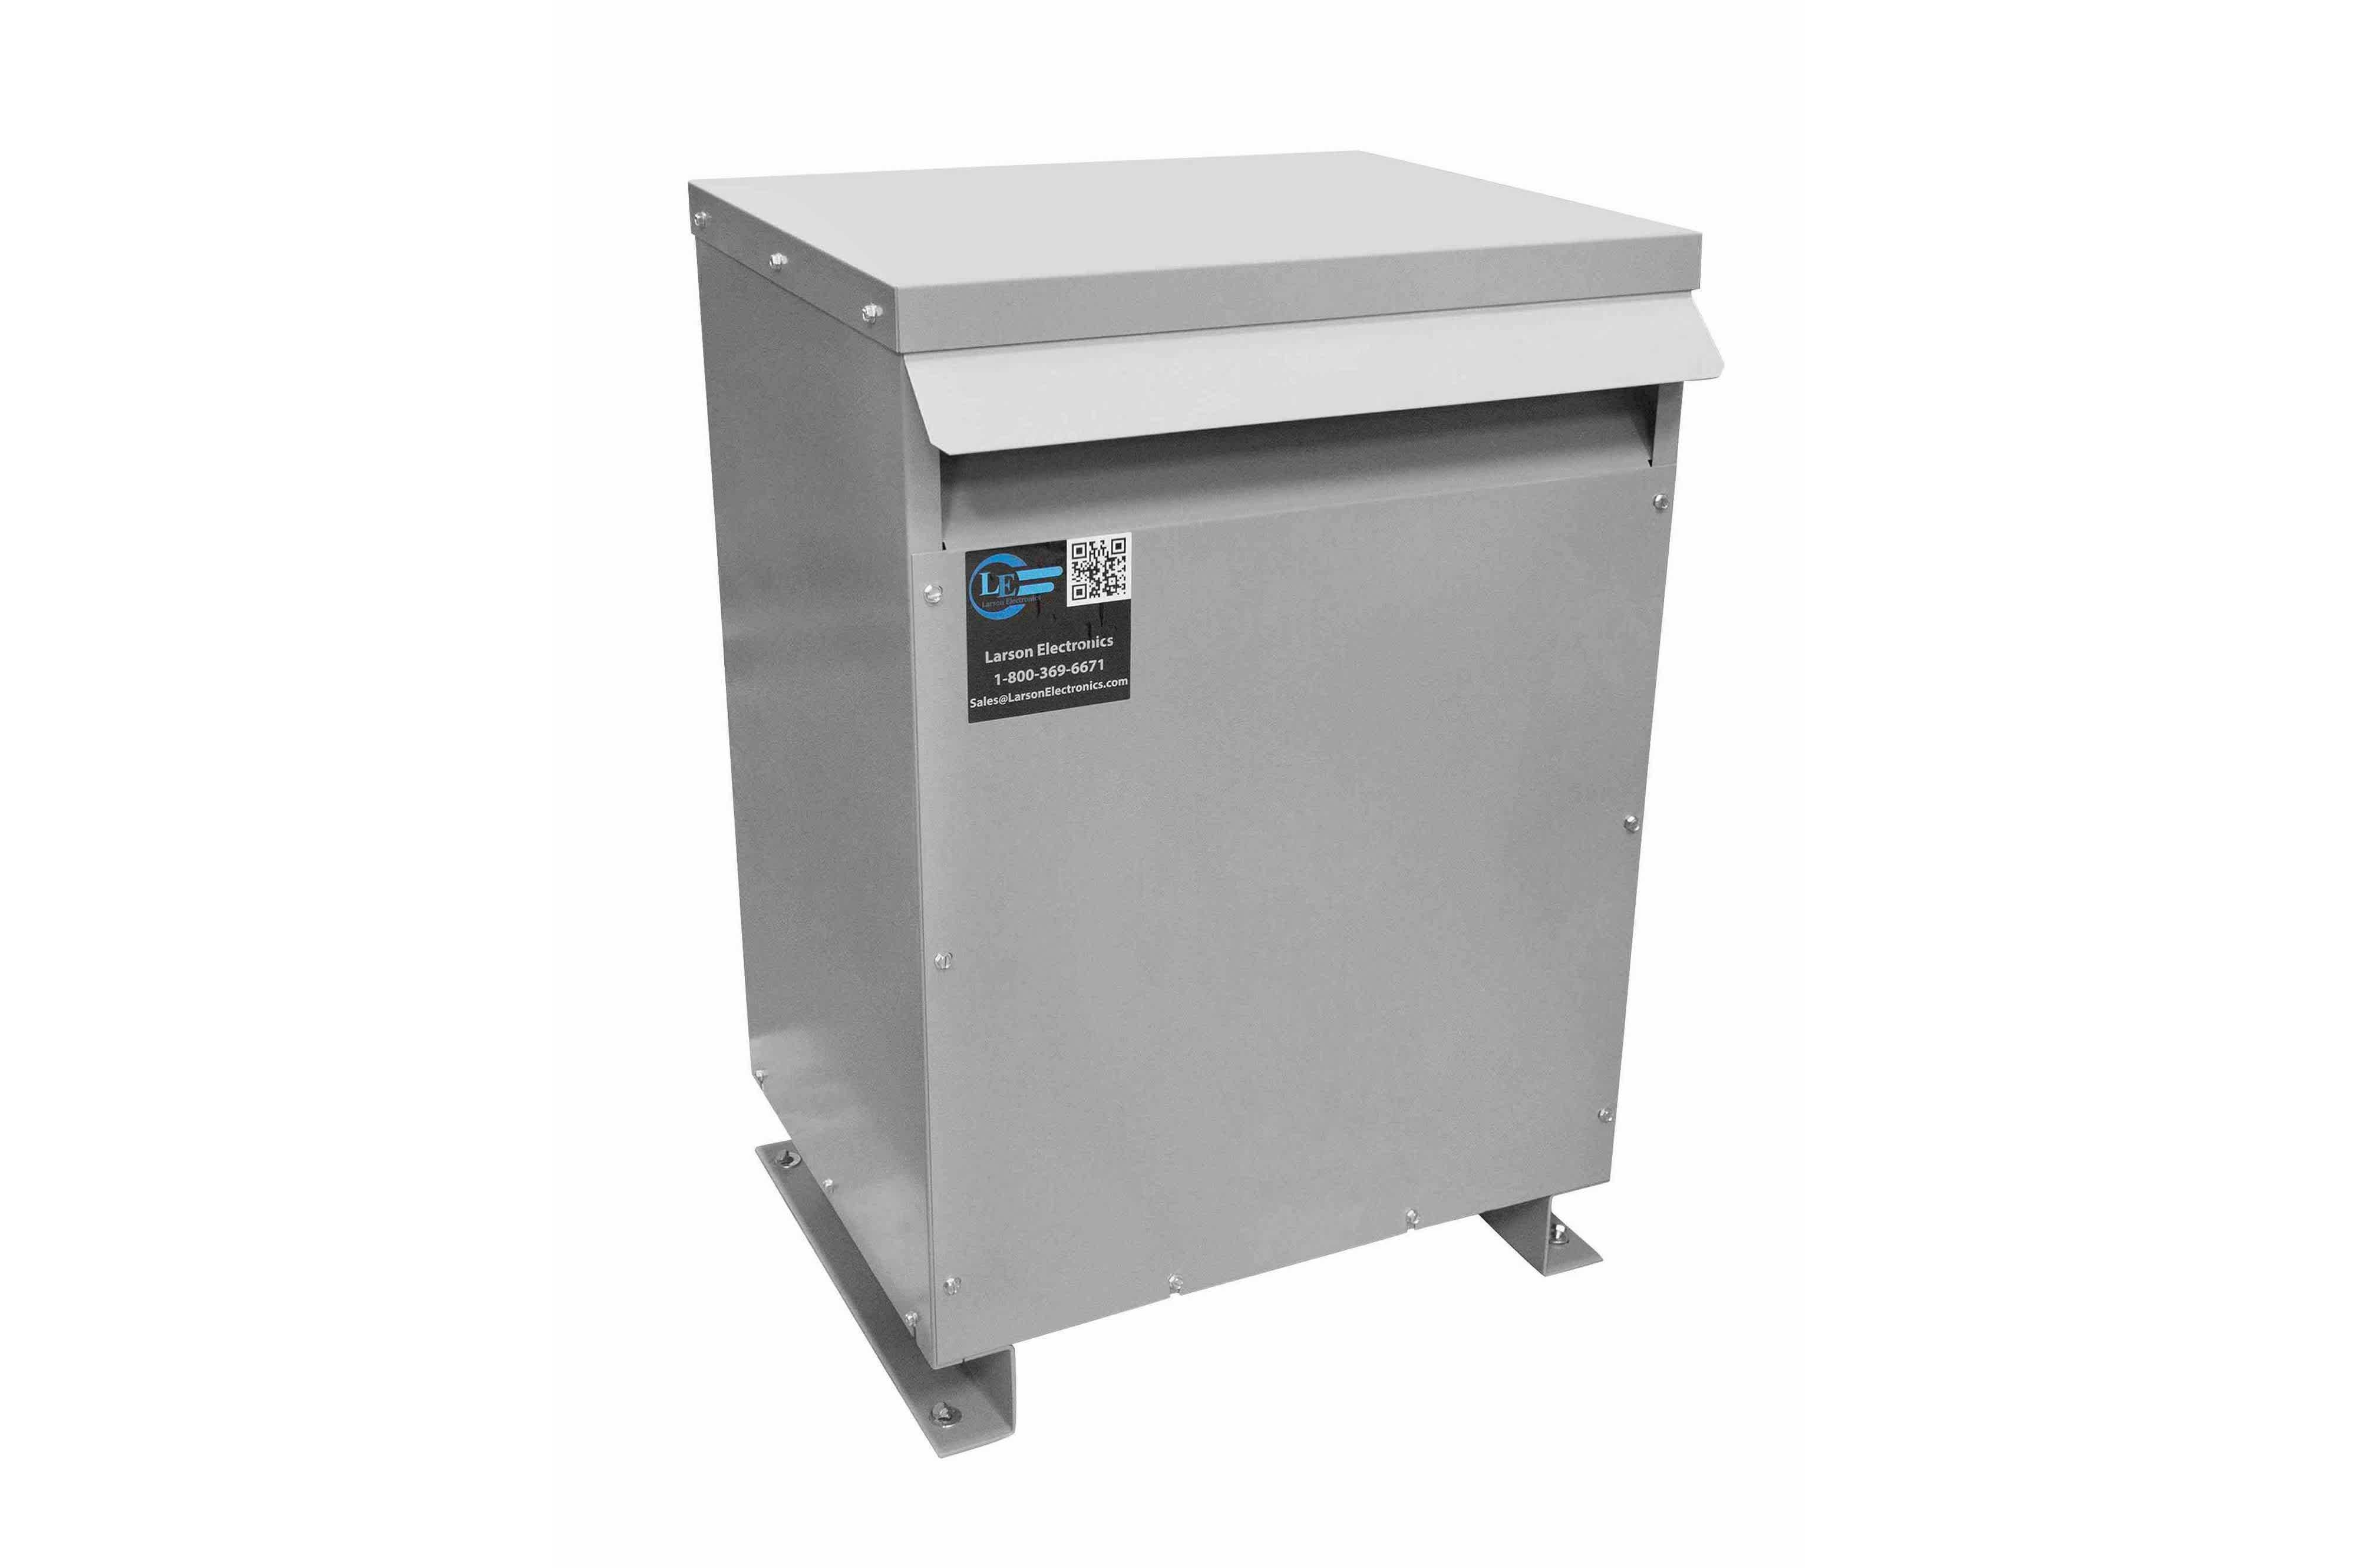 28 kVA 3PH Isolation Transformer, 460V Wye Primary, 400V Delta Secondary, N3R, Ventilated, 60 Hz